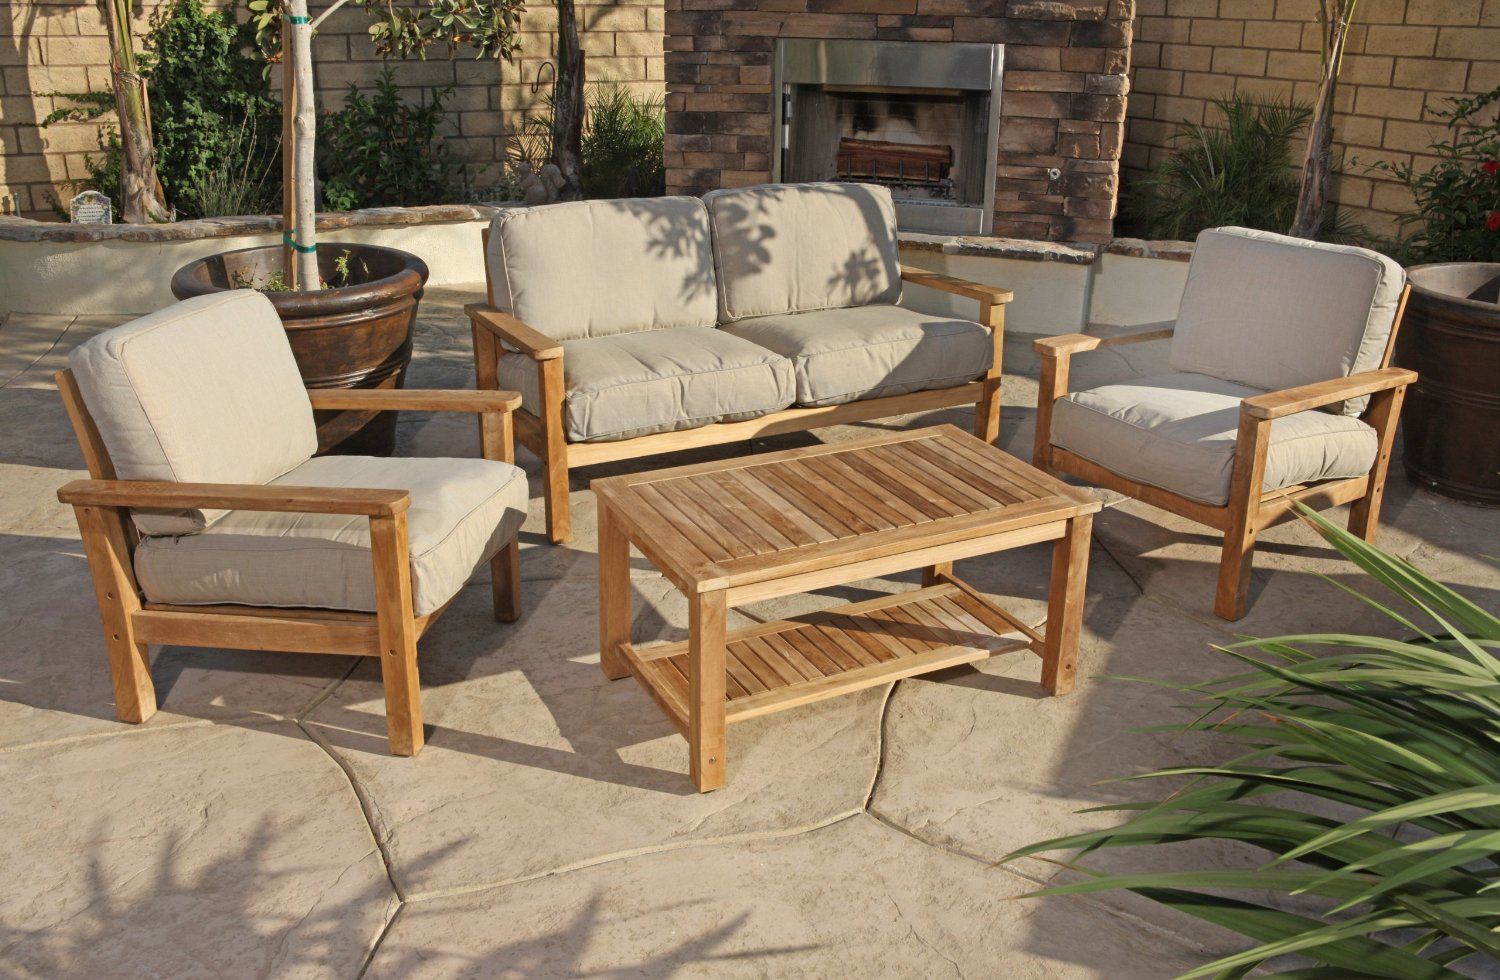 Modern wicker sectional outdoor sofa sets teak outdoor sofa for Teak outdoor furniture